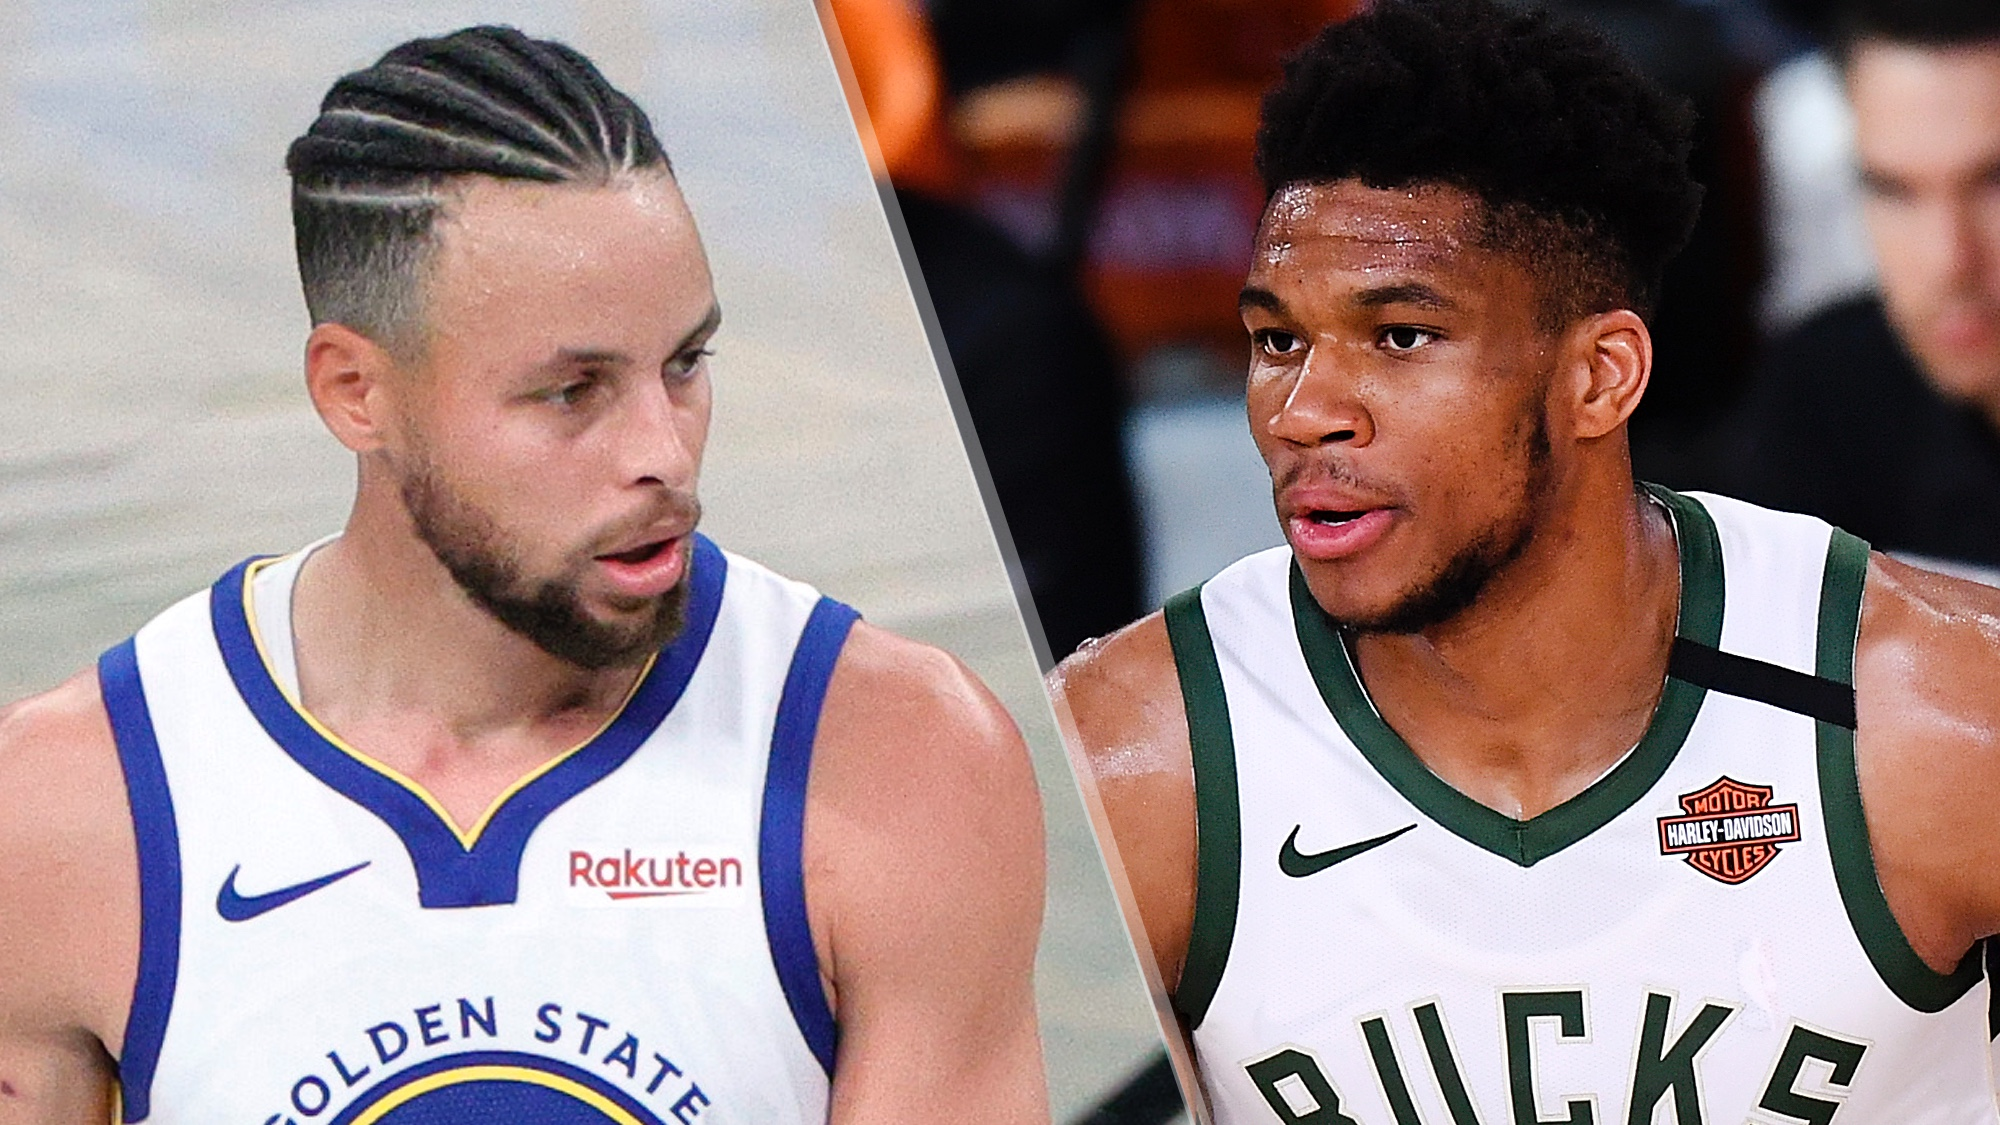 Warriors vs Bucks live stream: How to watch NBA Christmas Day game online |  Tom's Guide